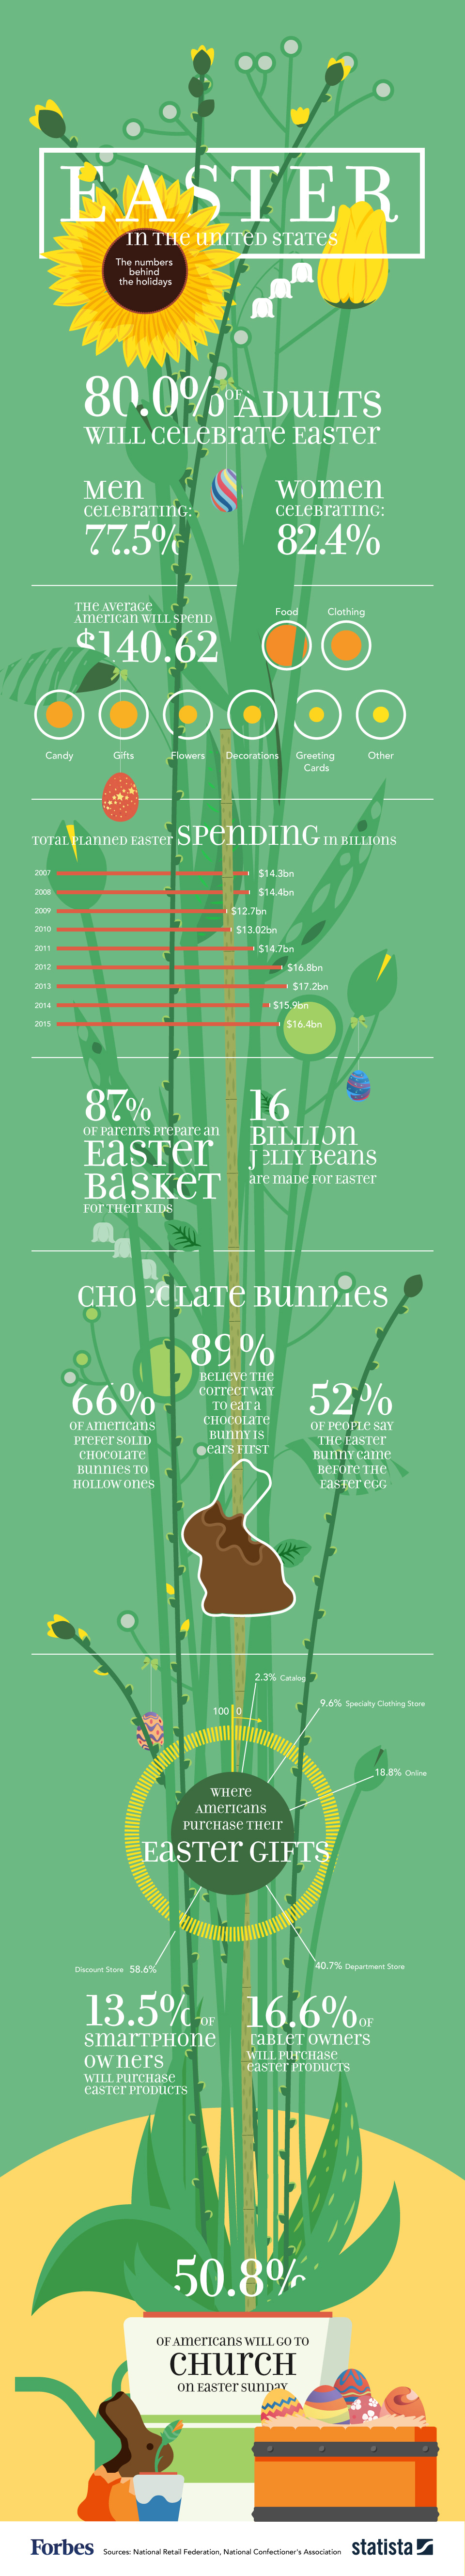 [INFOGRAPHIC] Easter: America's Most Popular Holiday!